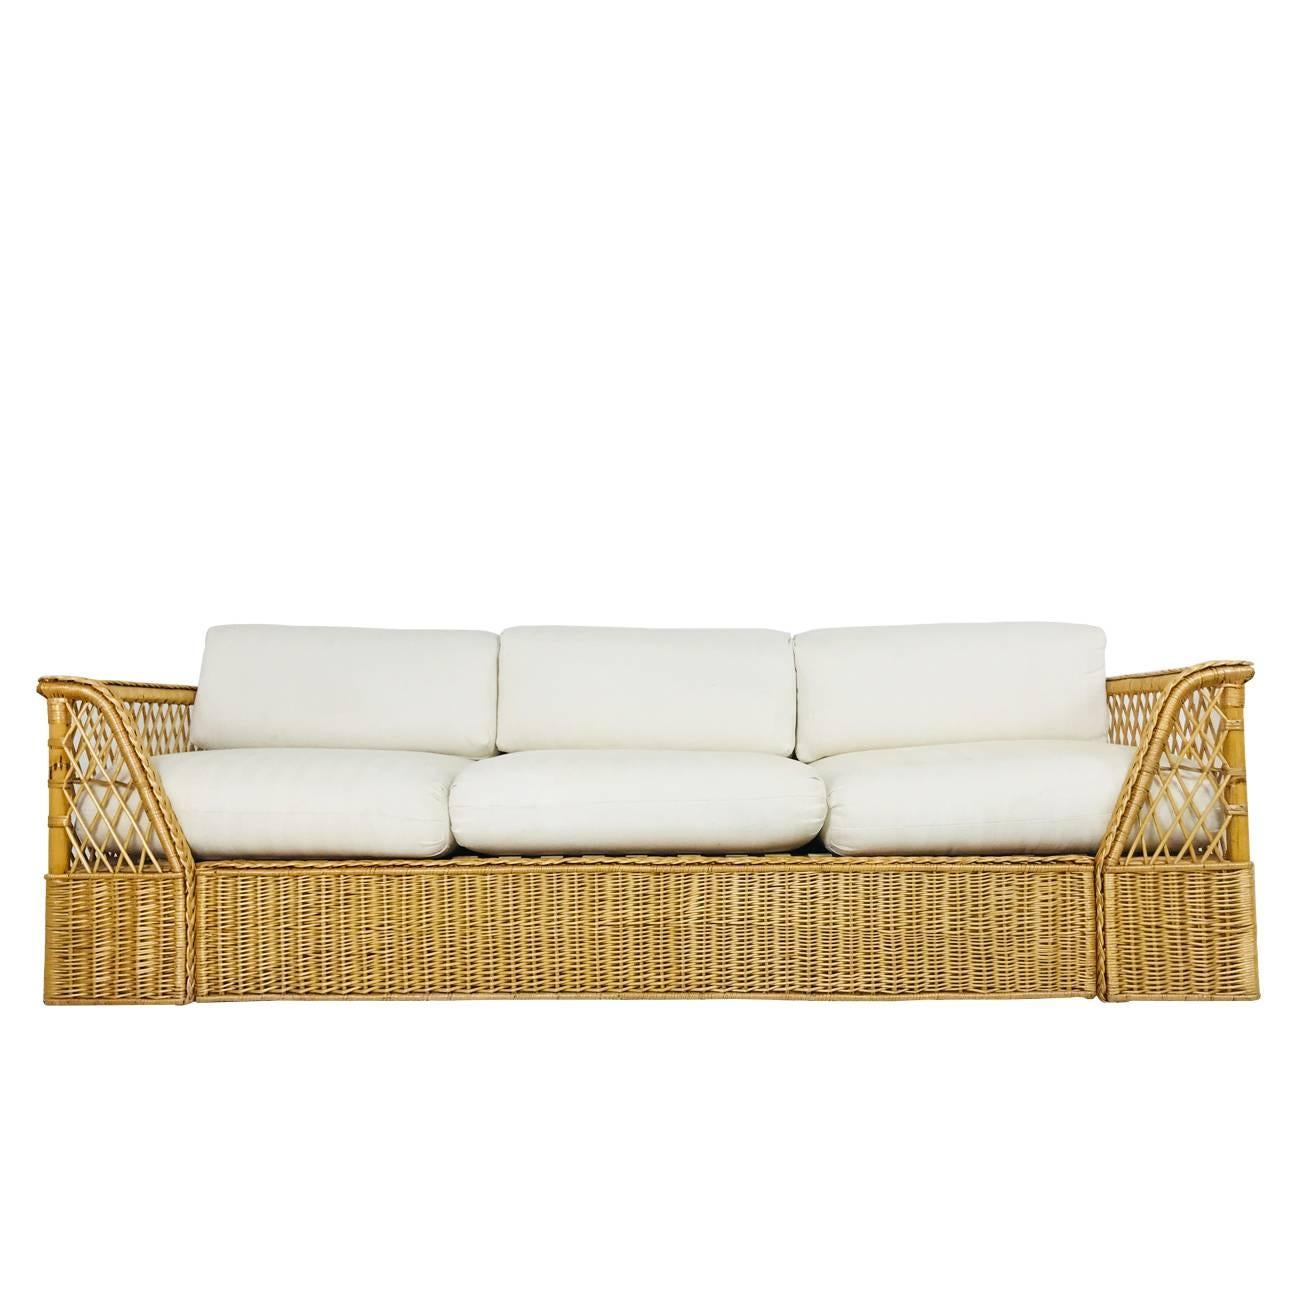 Table Lounge Garden Furniture Couch Rattan Png Download 1500 Rattan Sofa With Upholstered Cushions By Mcguire